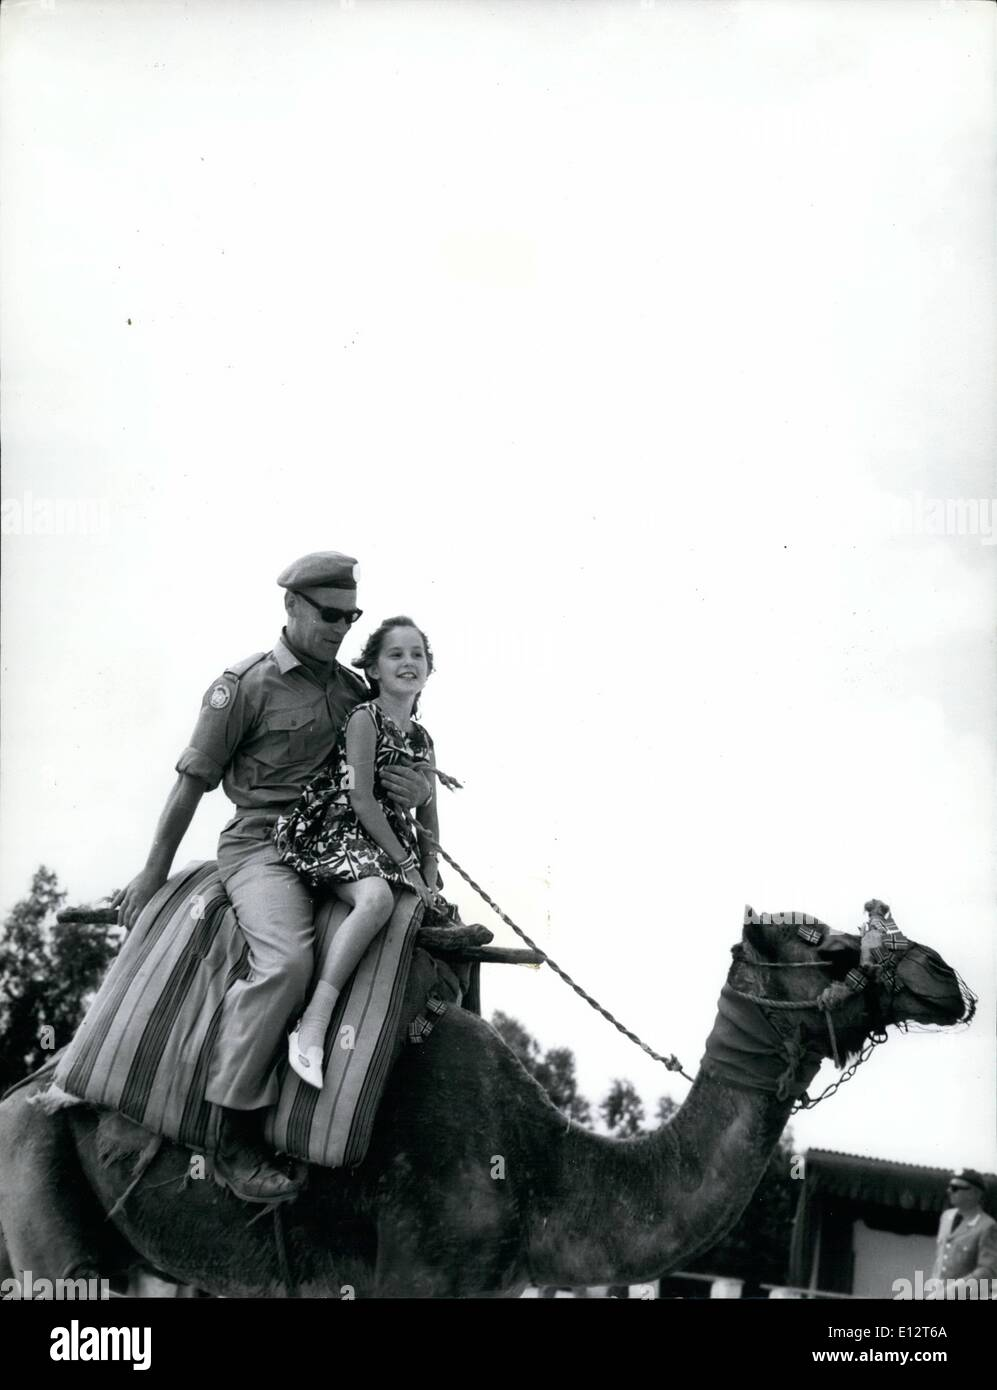 Feb. 25, 2012 - In Gaza Cairo there ample kinds of amusements  visits to the Pyramids and the Sphinx, as camel rides - the letter is very popular the youngest. Norvegian member of UN troops in Gaza with daughter riding Camel. - Stock Image